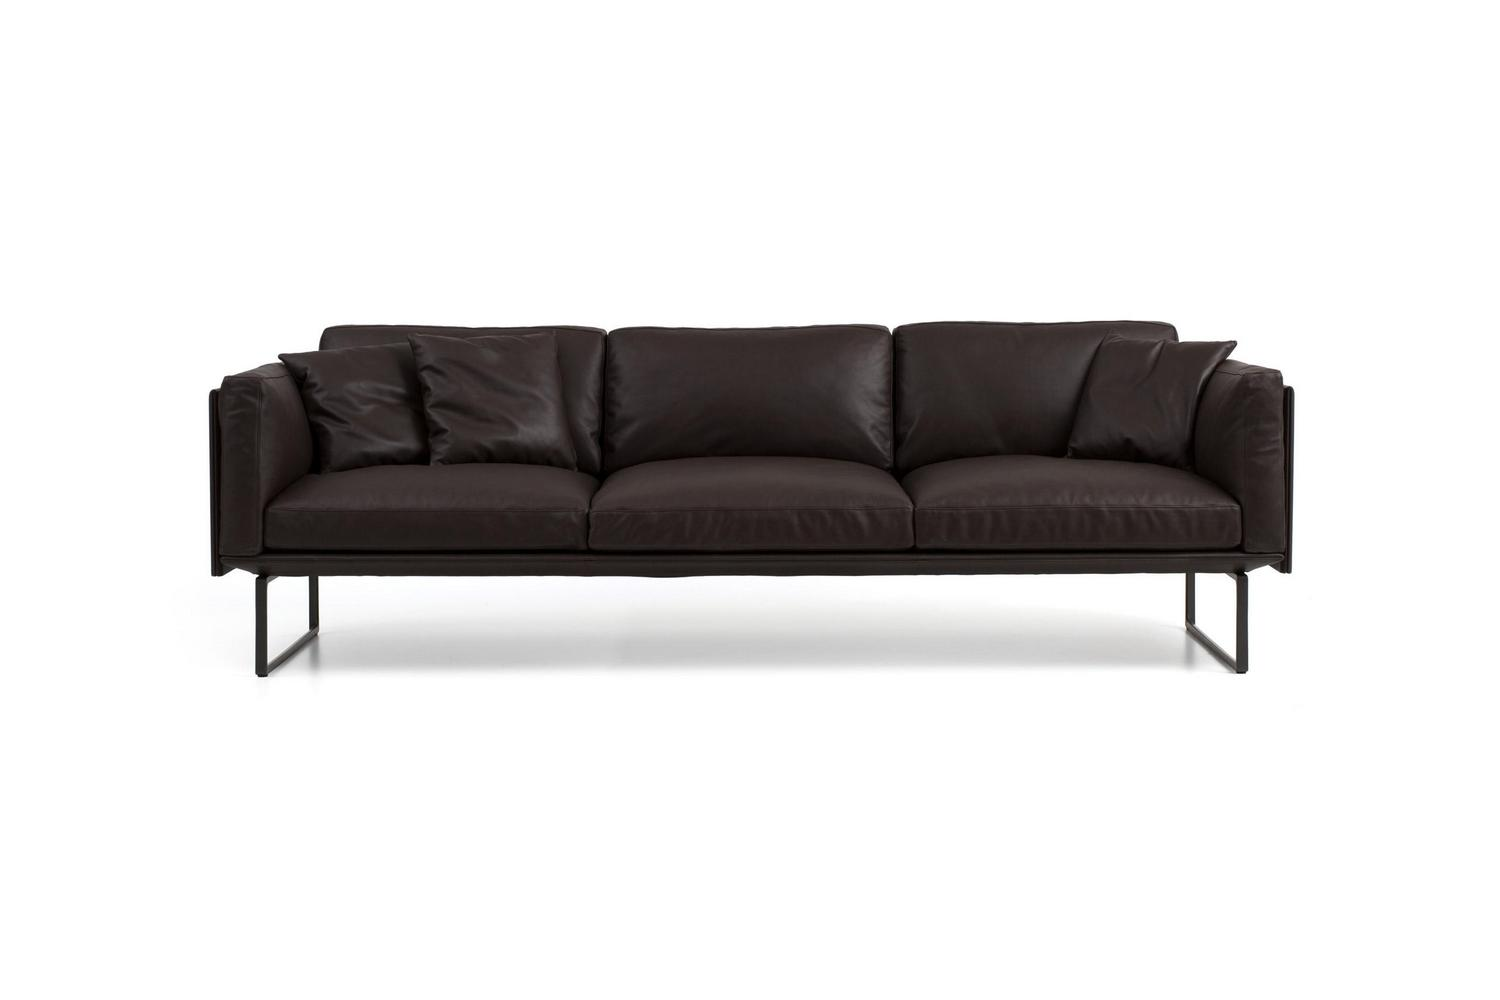 Piero Lissoni Modular Sofa 202 8 Sofa By Piero Lissoni For Cassina Space Furniture